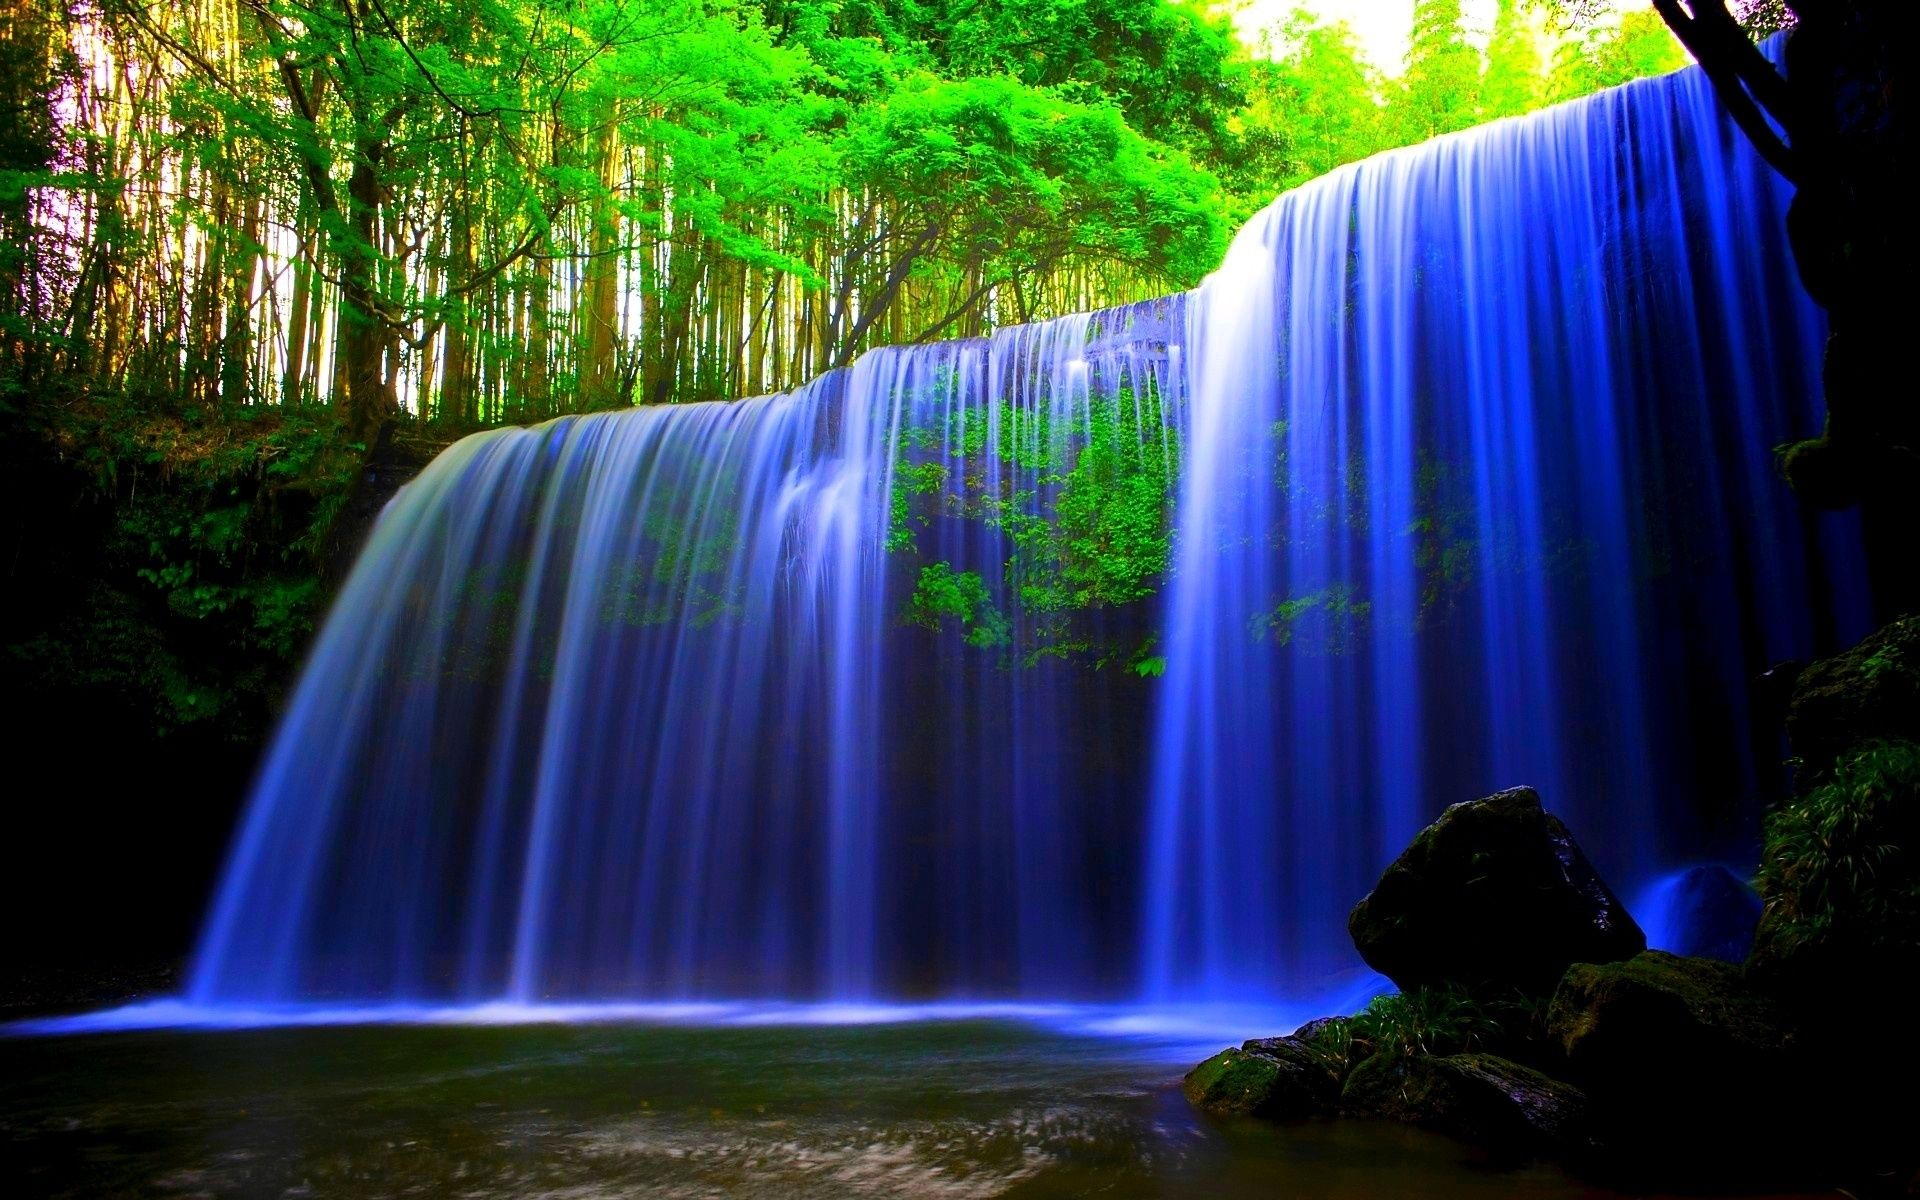 Live Backgrounds For PC Free Download | a | Waterfall wallpaper, Natural waterfalls, Beautiful ...